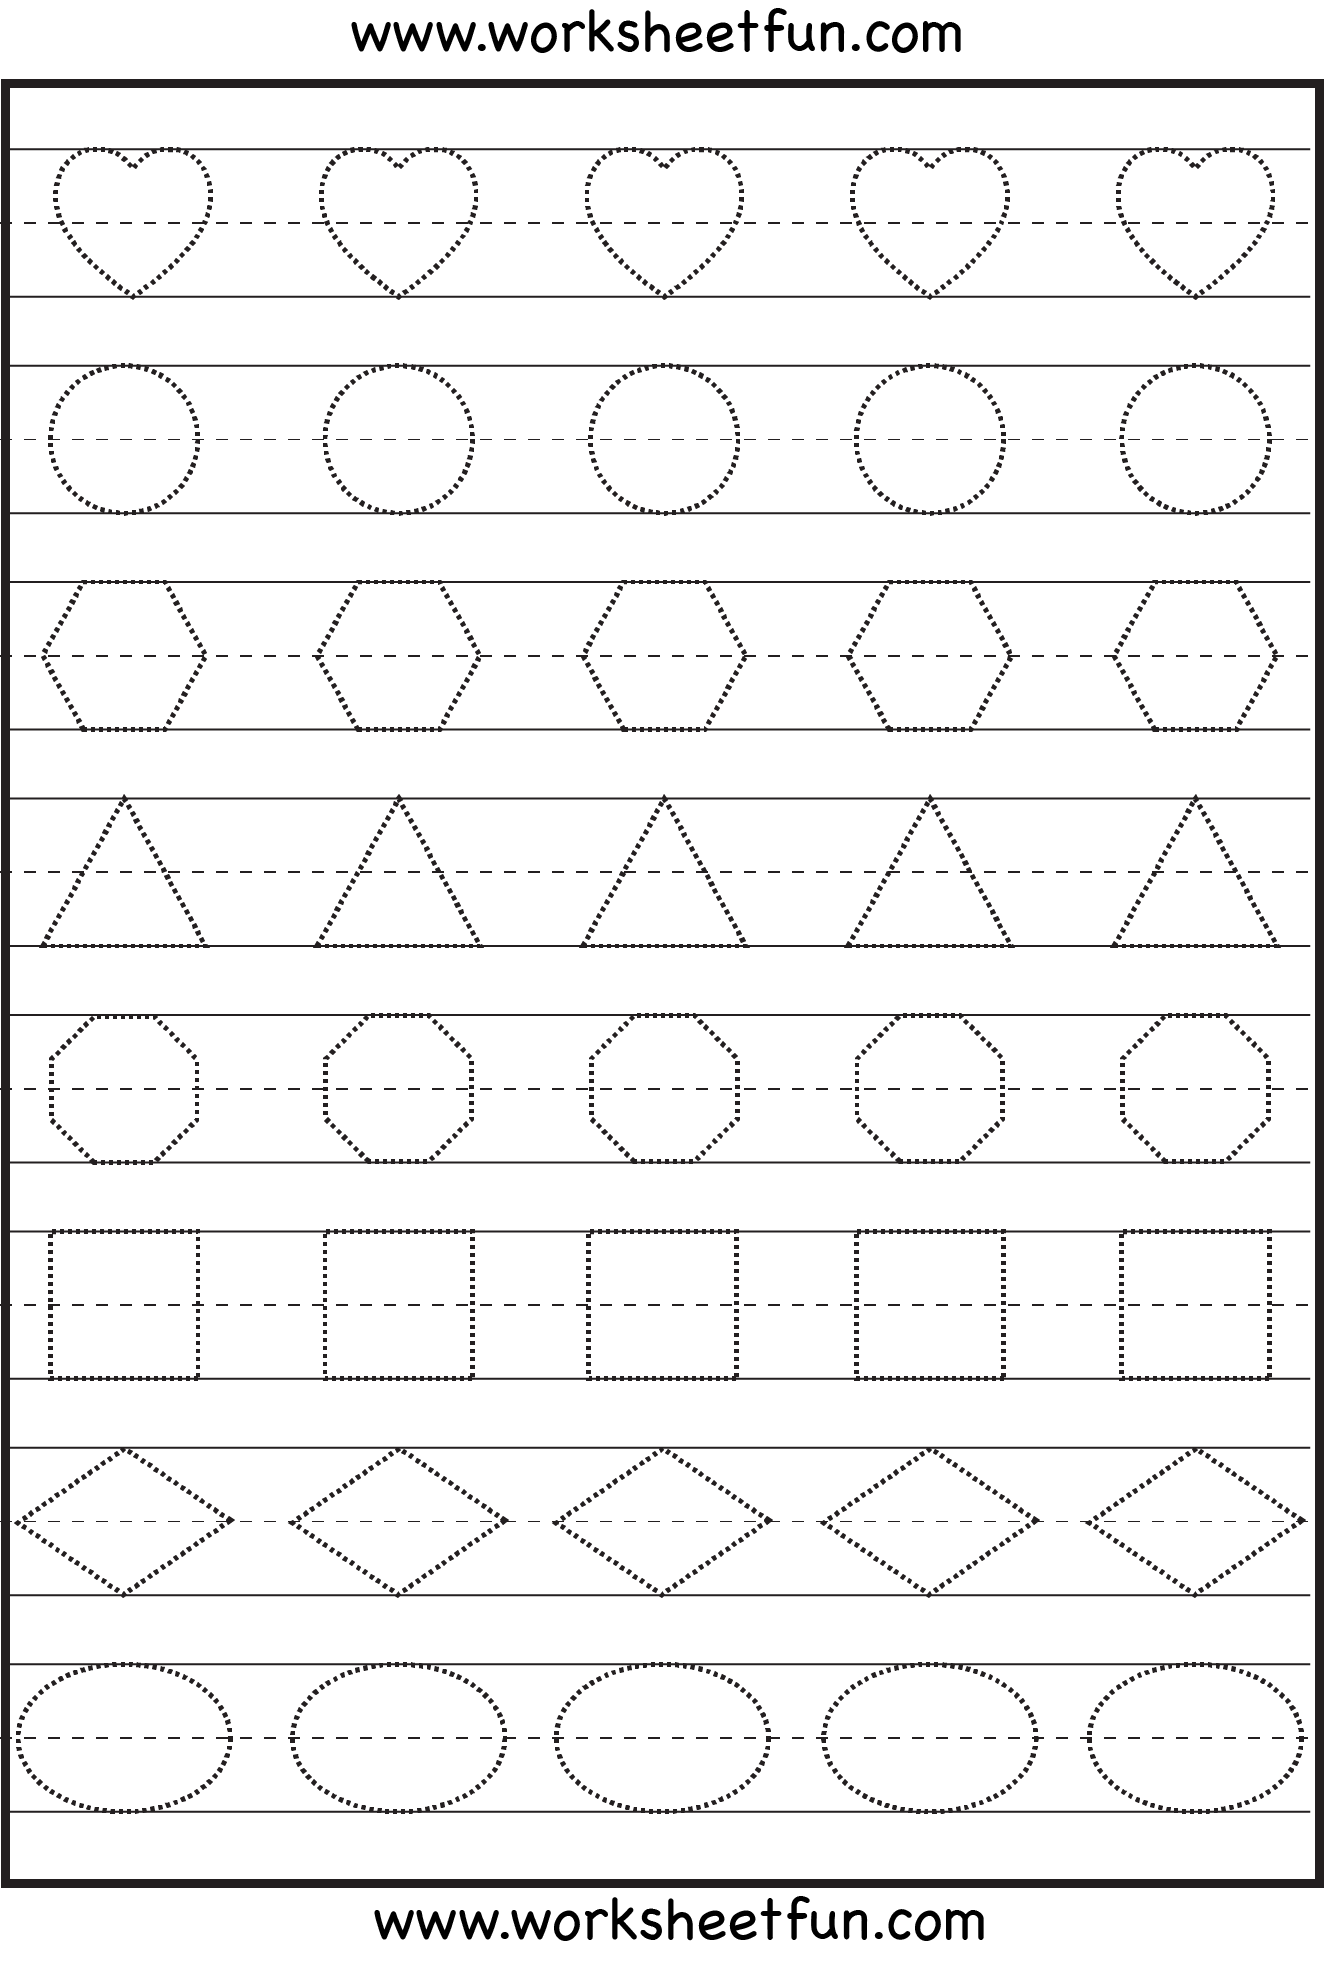 Printables Preschool Printable Worksheets 1000 images about school on pinterest alphabet worksheets letter b and preschool